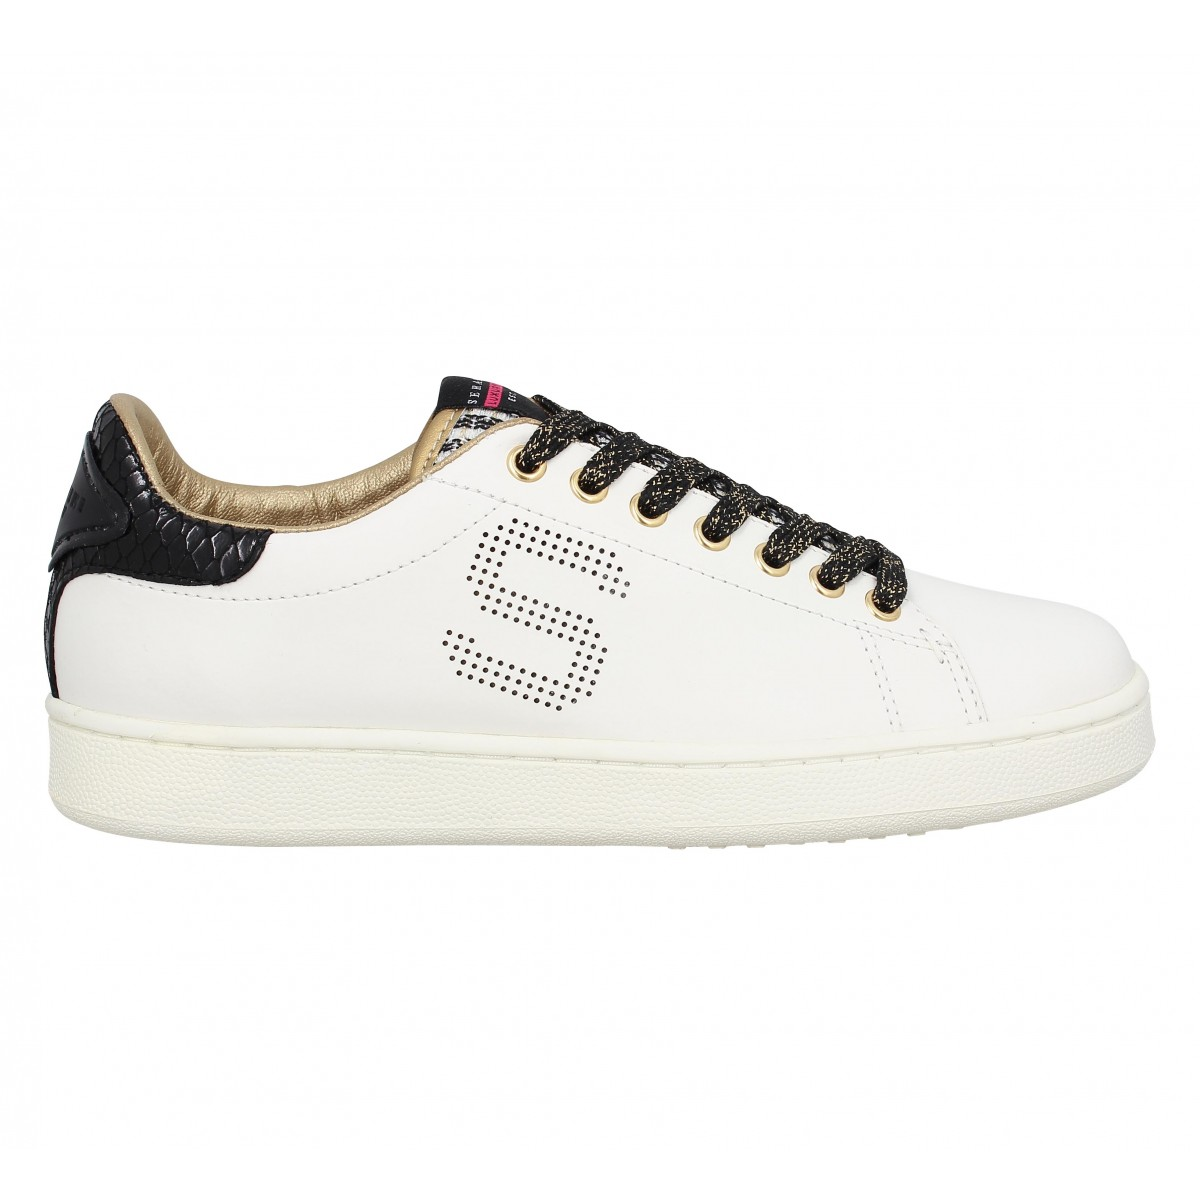 ef4a1b75e7 Serafini j connors white femme   Fanny chaussures